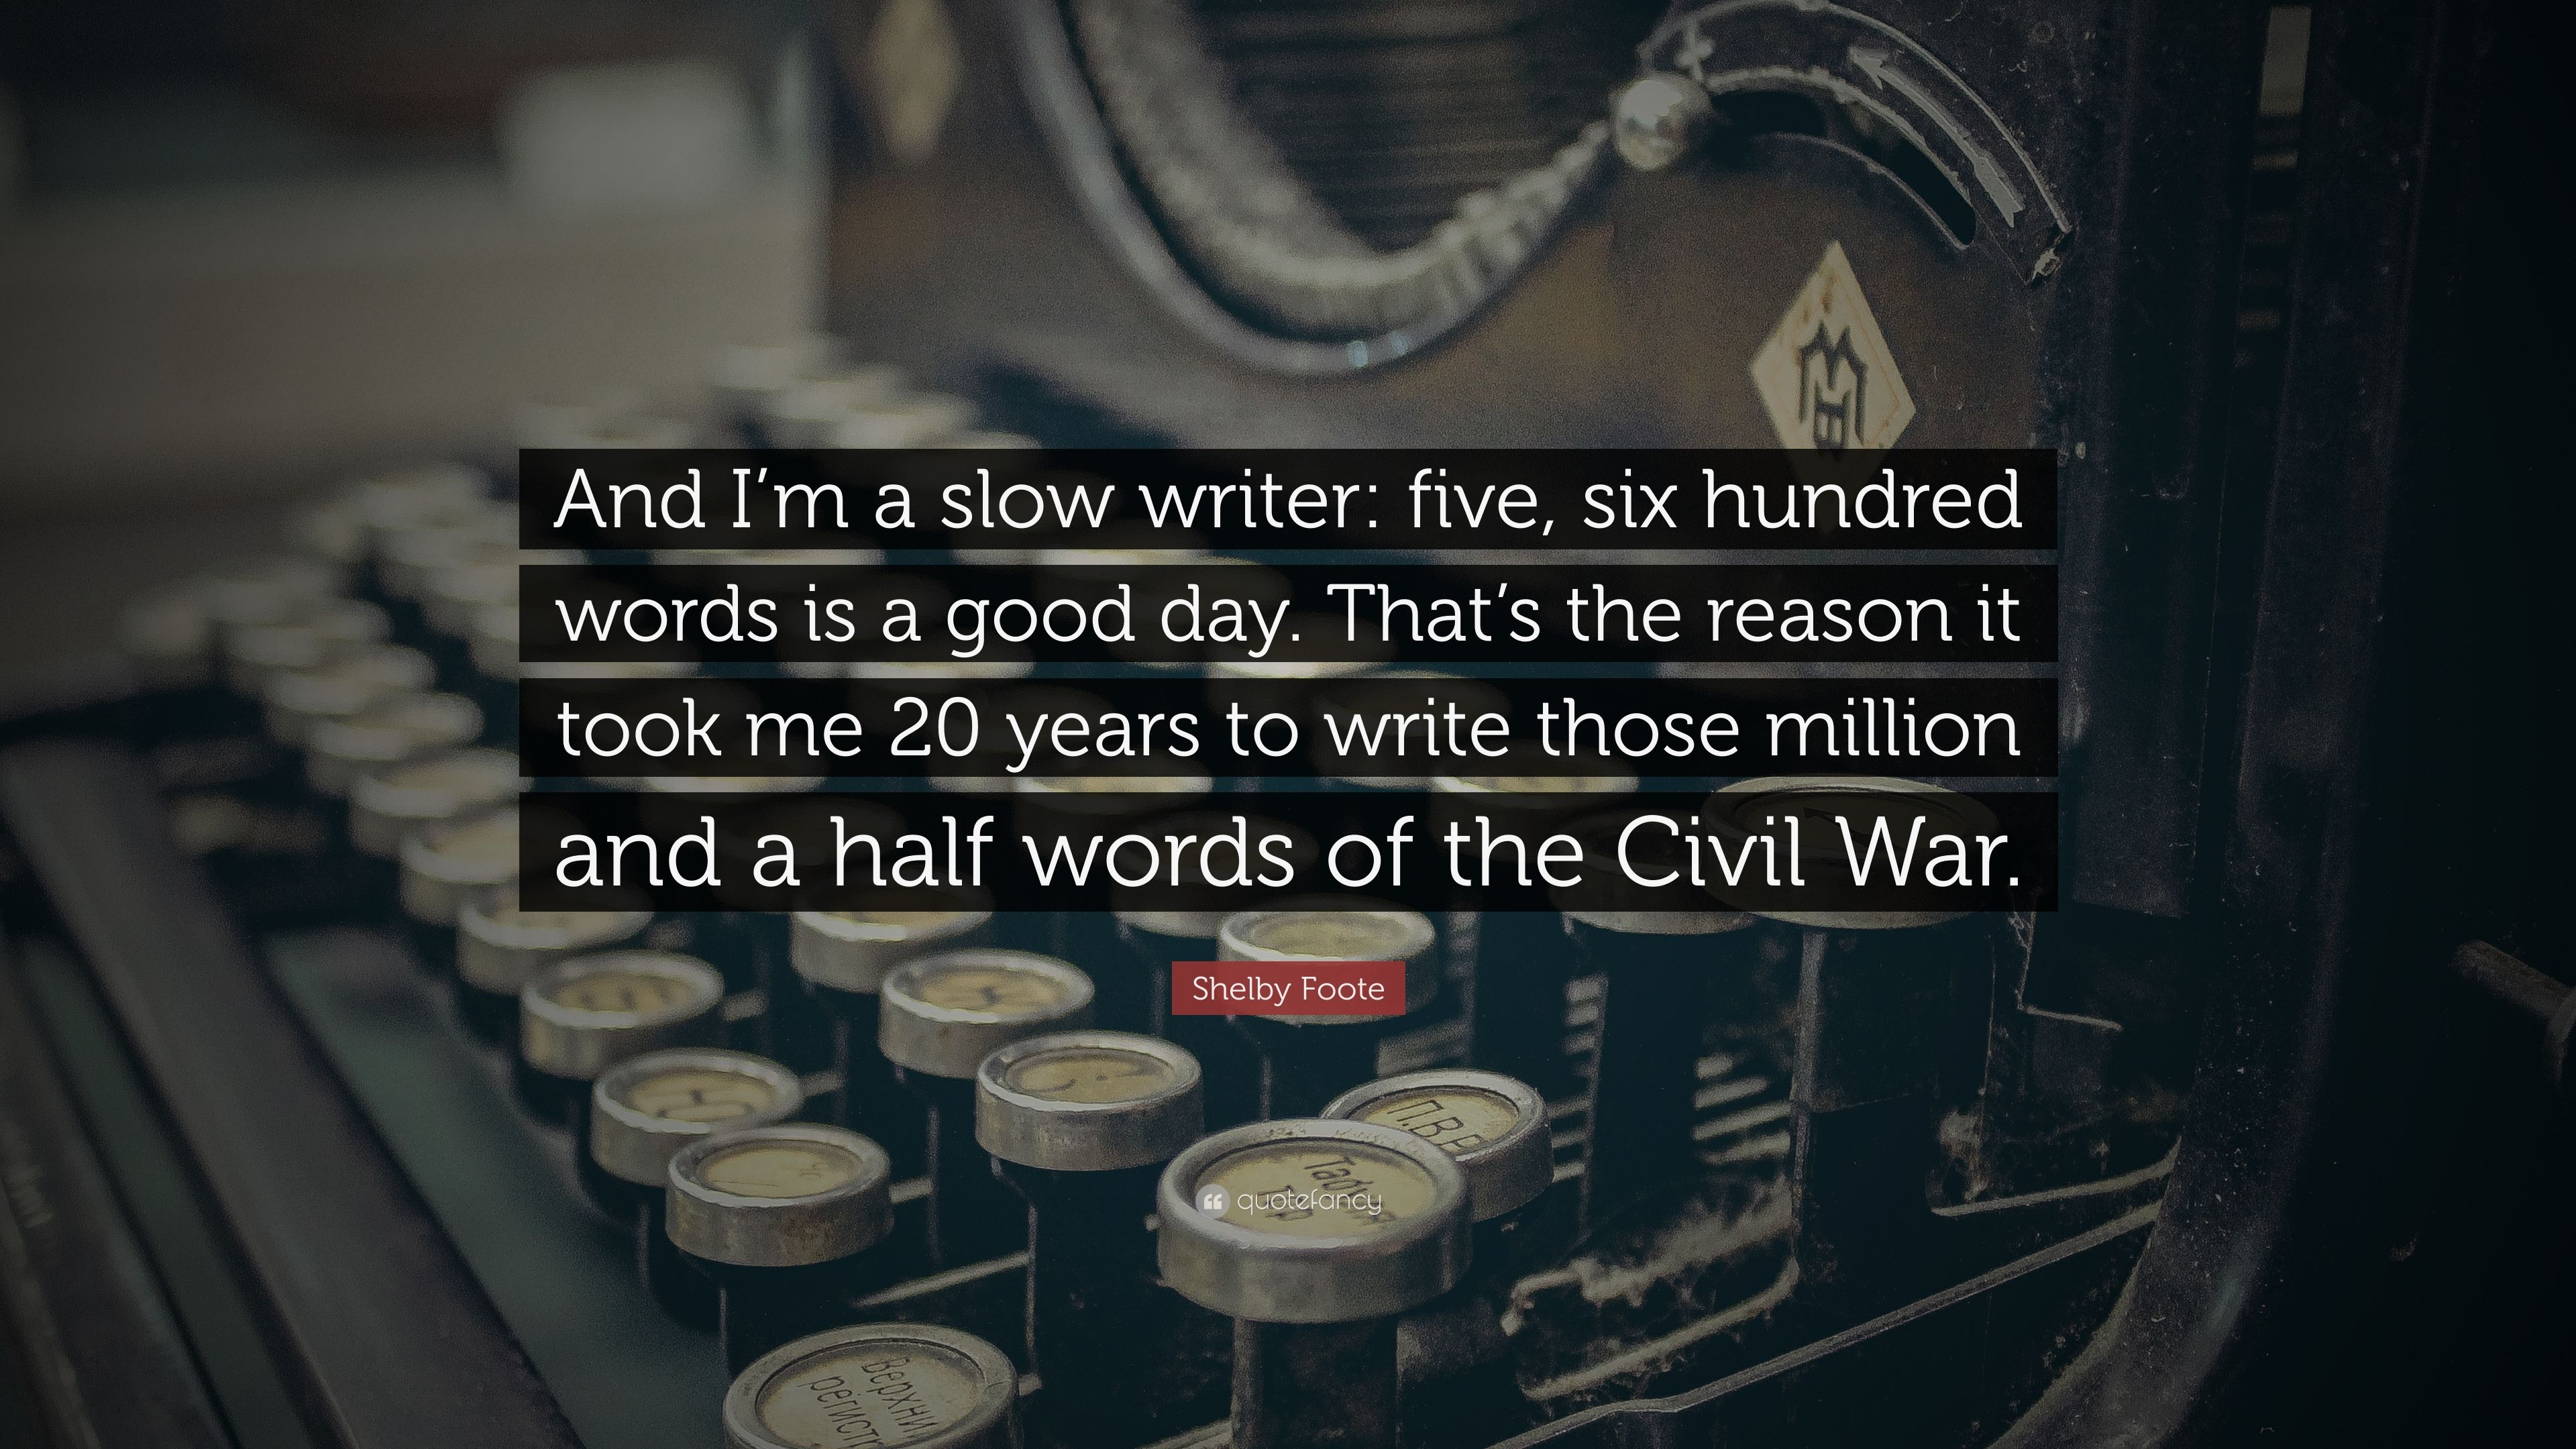 Shelby Foote Civil War Quotes Pinterest thumbnail